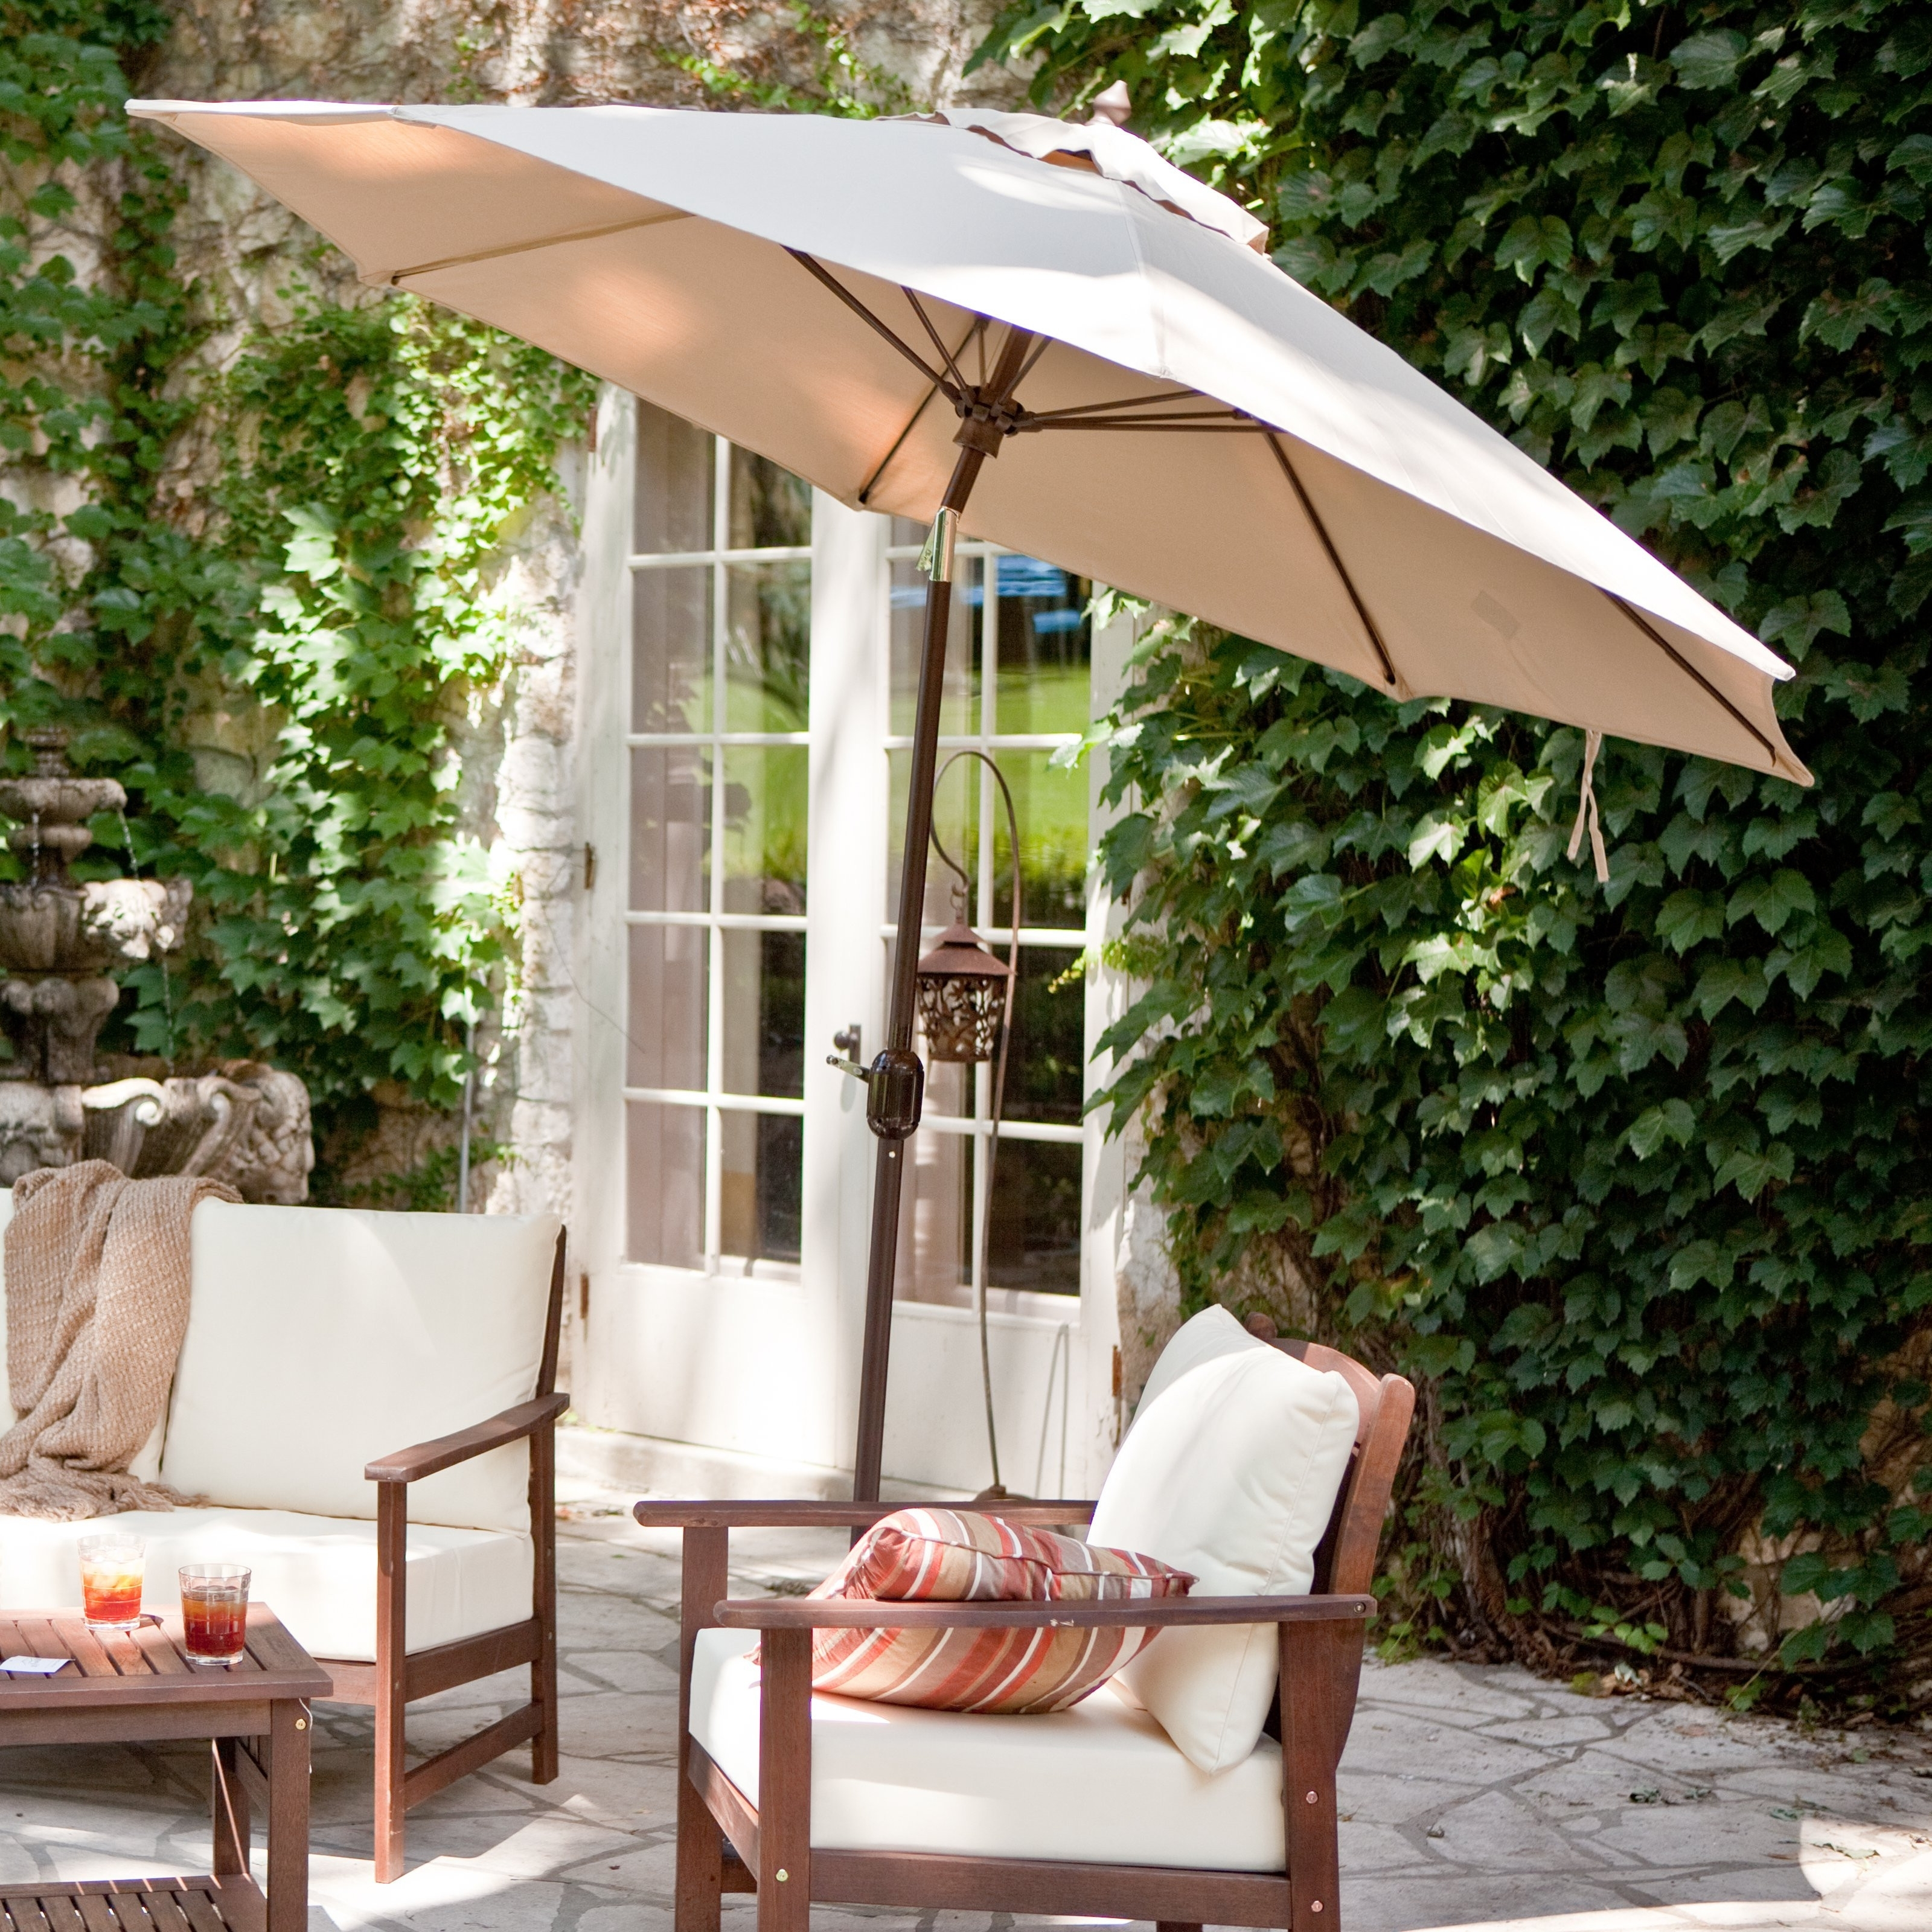 Small Patio Umbrellas Pertaining To Most Up To Date Patio Umbrellas Big Lots Luxury Small Patio Furniture Sets Umbrella (View 5 of 20)